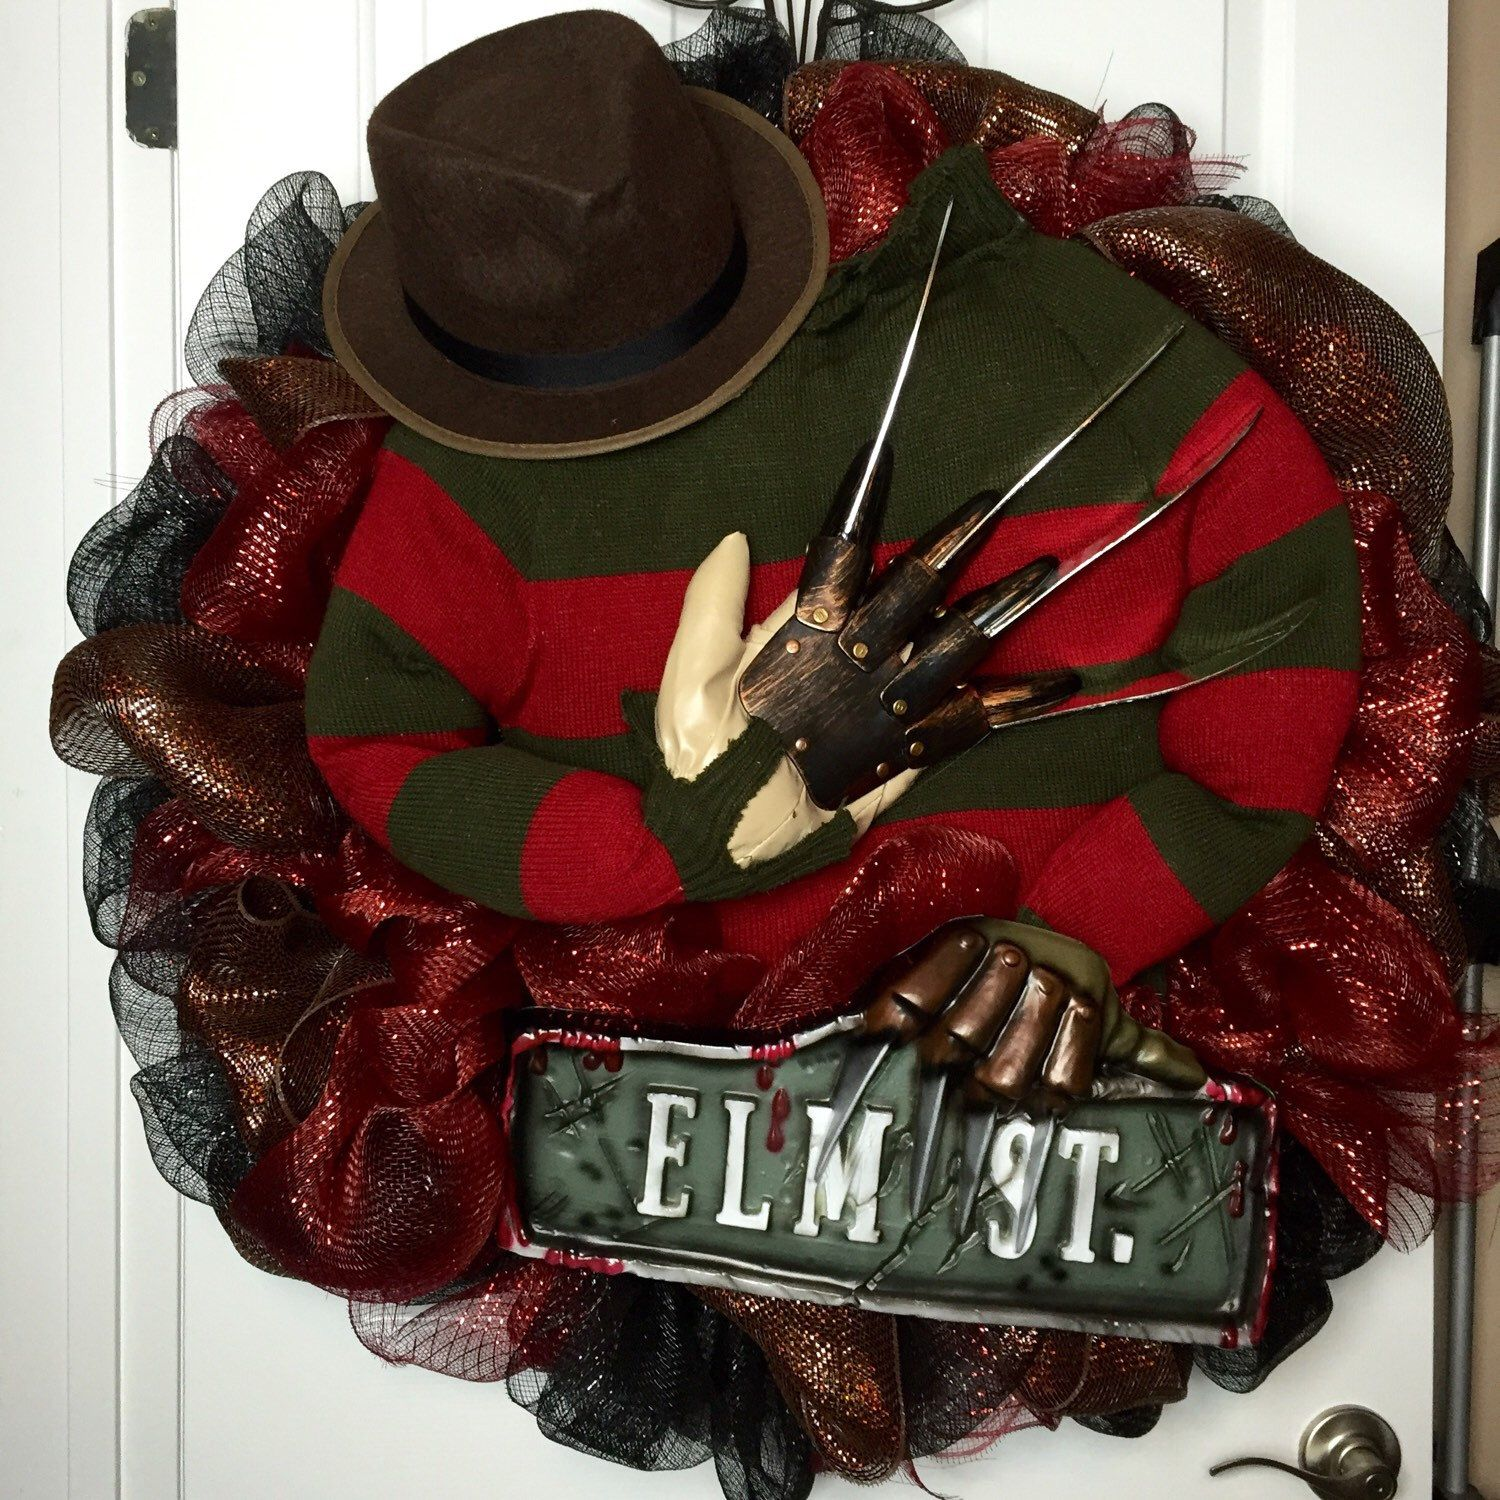 nightmare on elm street freddy krueger halloween wreath horror home decor - Freddy Krueger Halloween Decorations